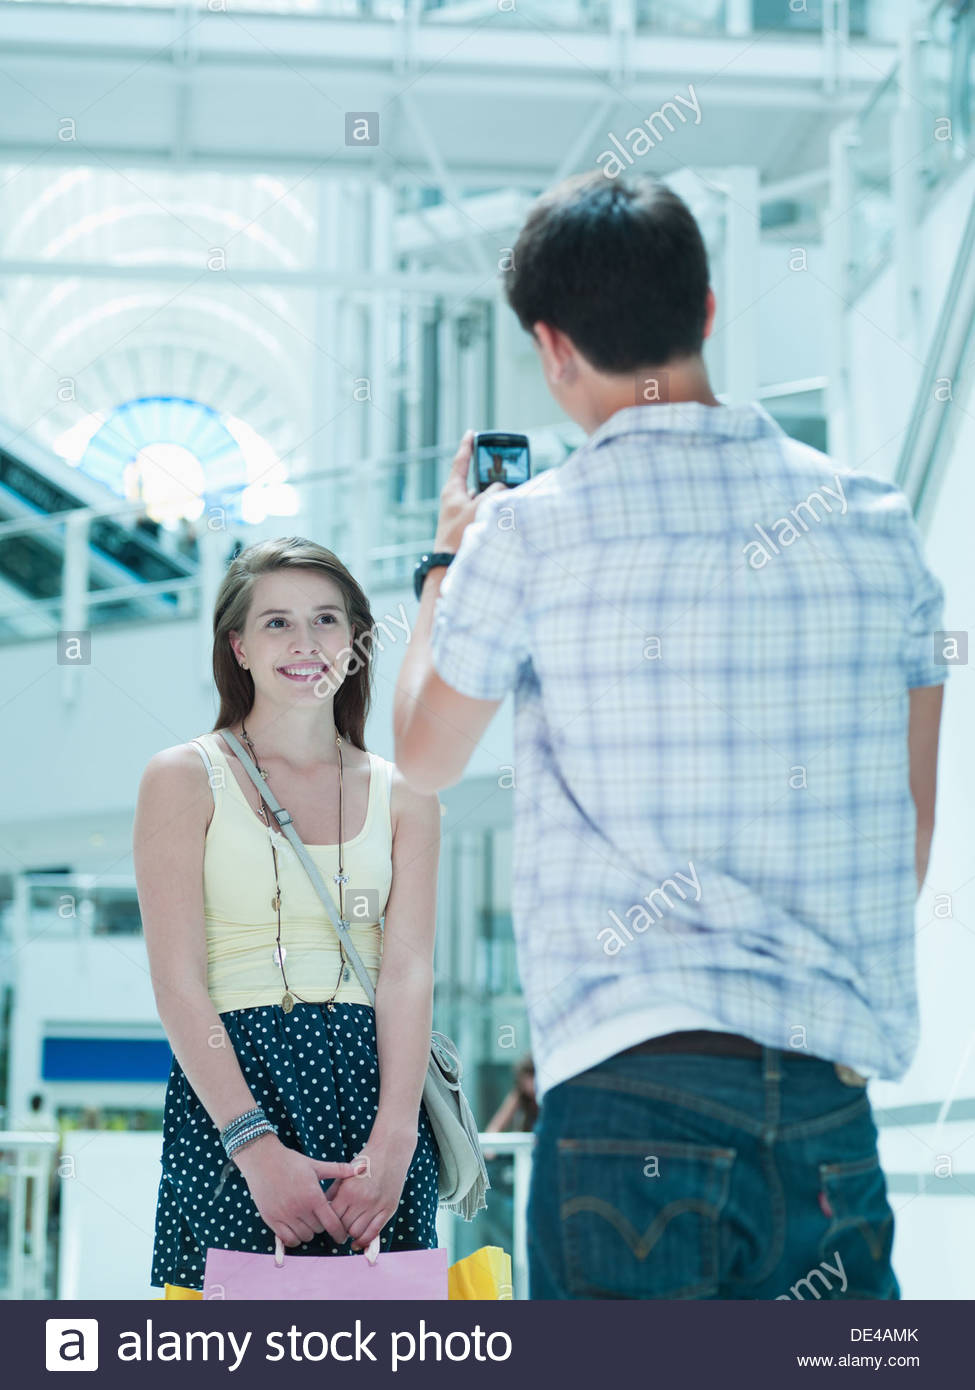 Man taking photograph of girlfriend in shopping mall - Stock Image